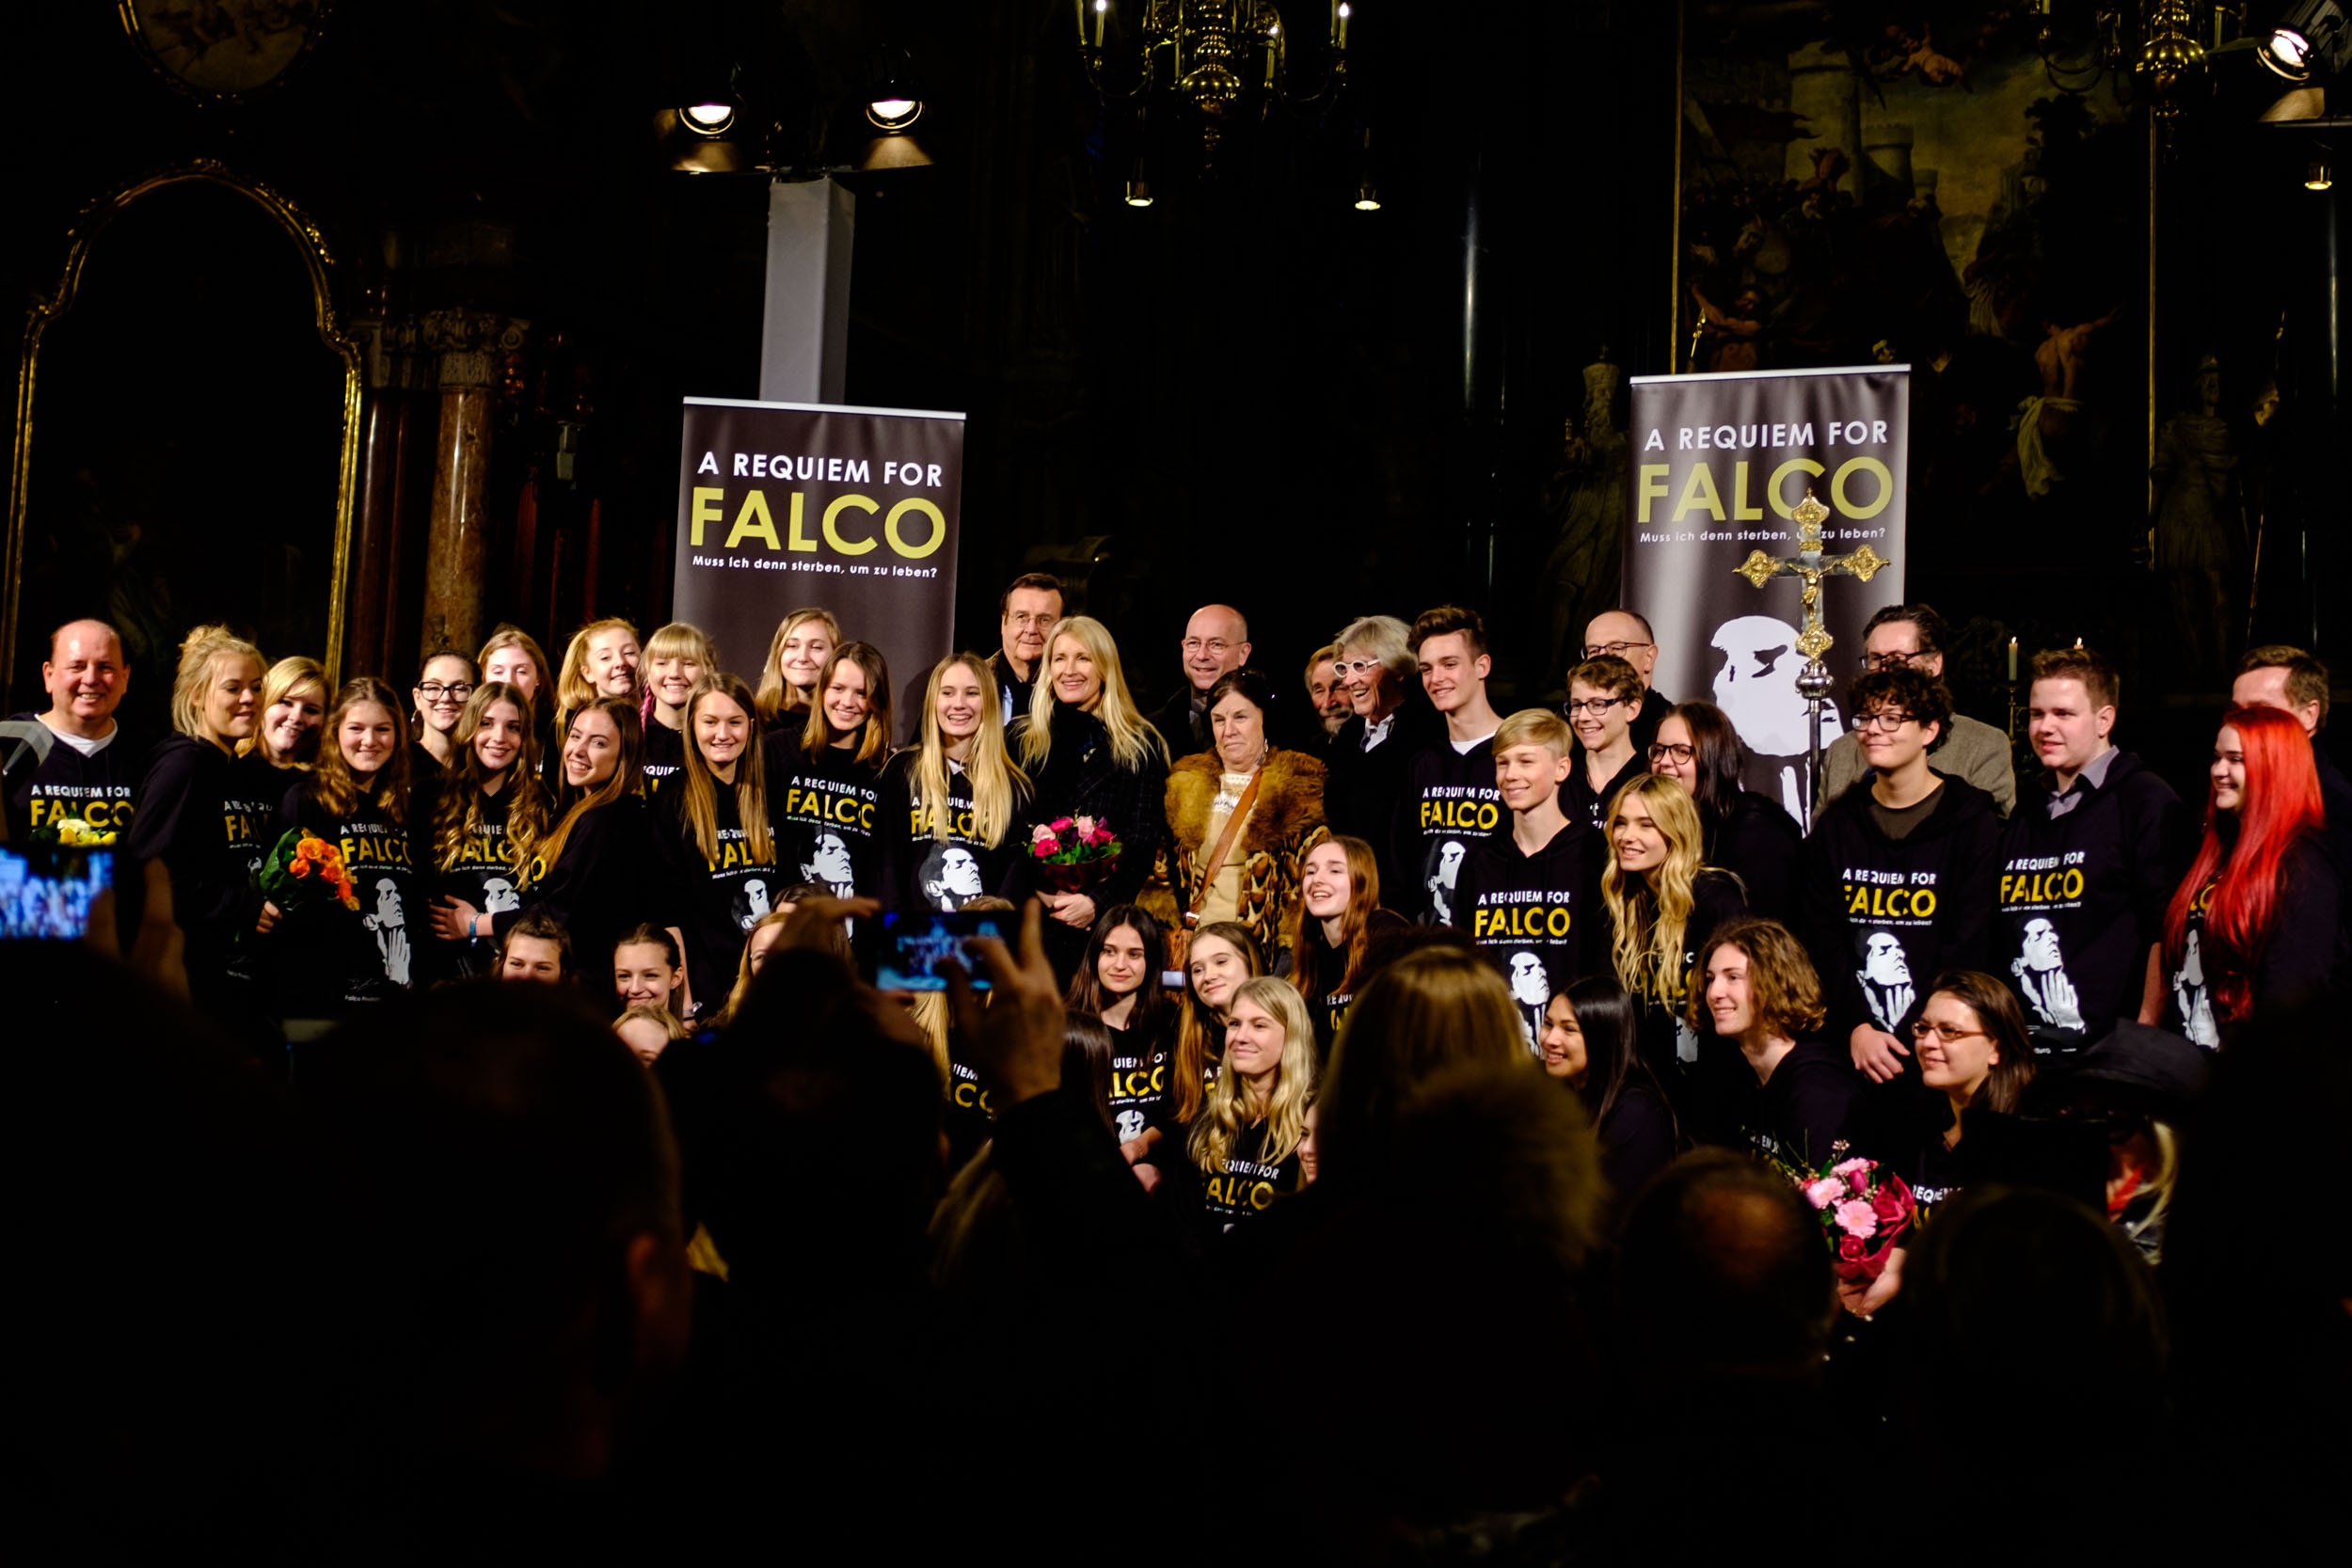 The performers of the A Requiem for Falco concert, which had included members of Opus, who sang 'Flyin' High', the song they've previously performed with Falco